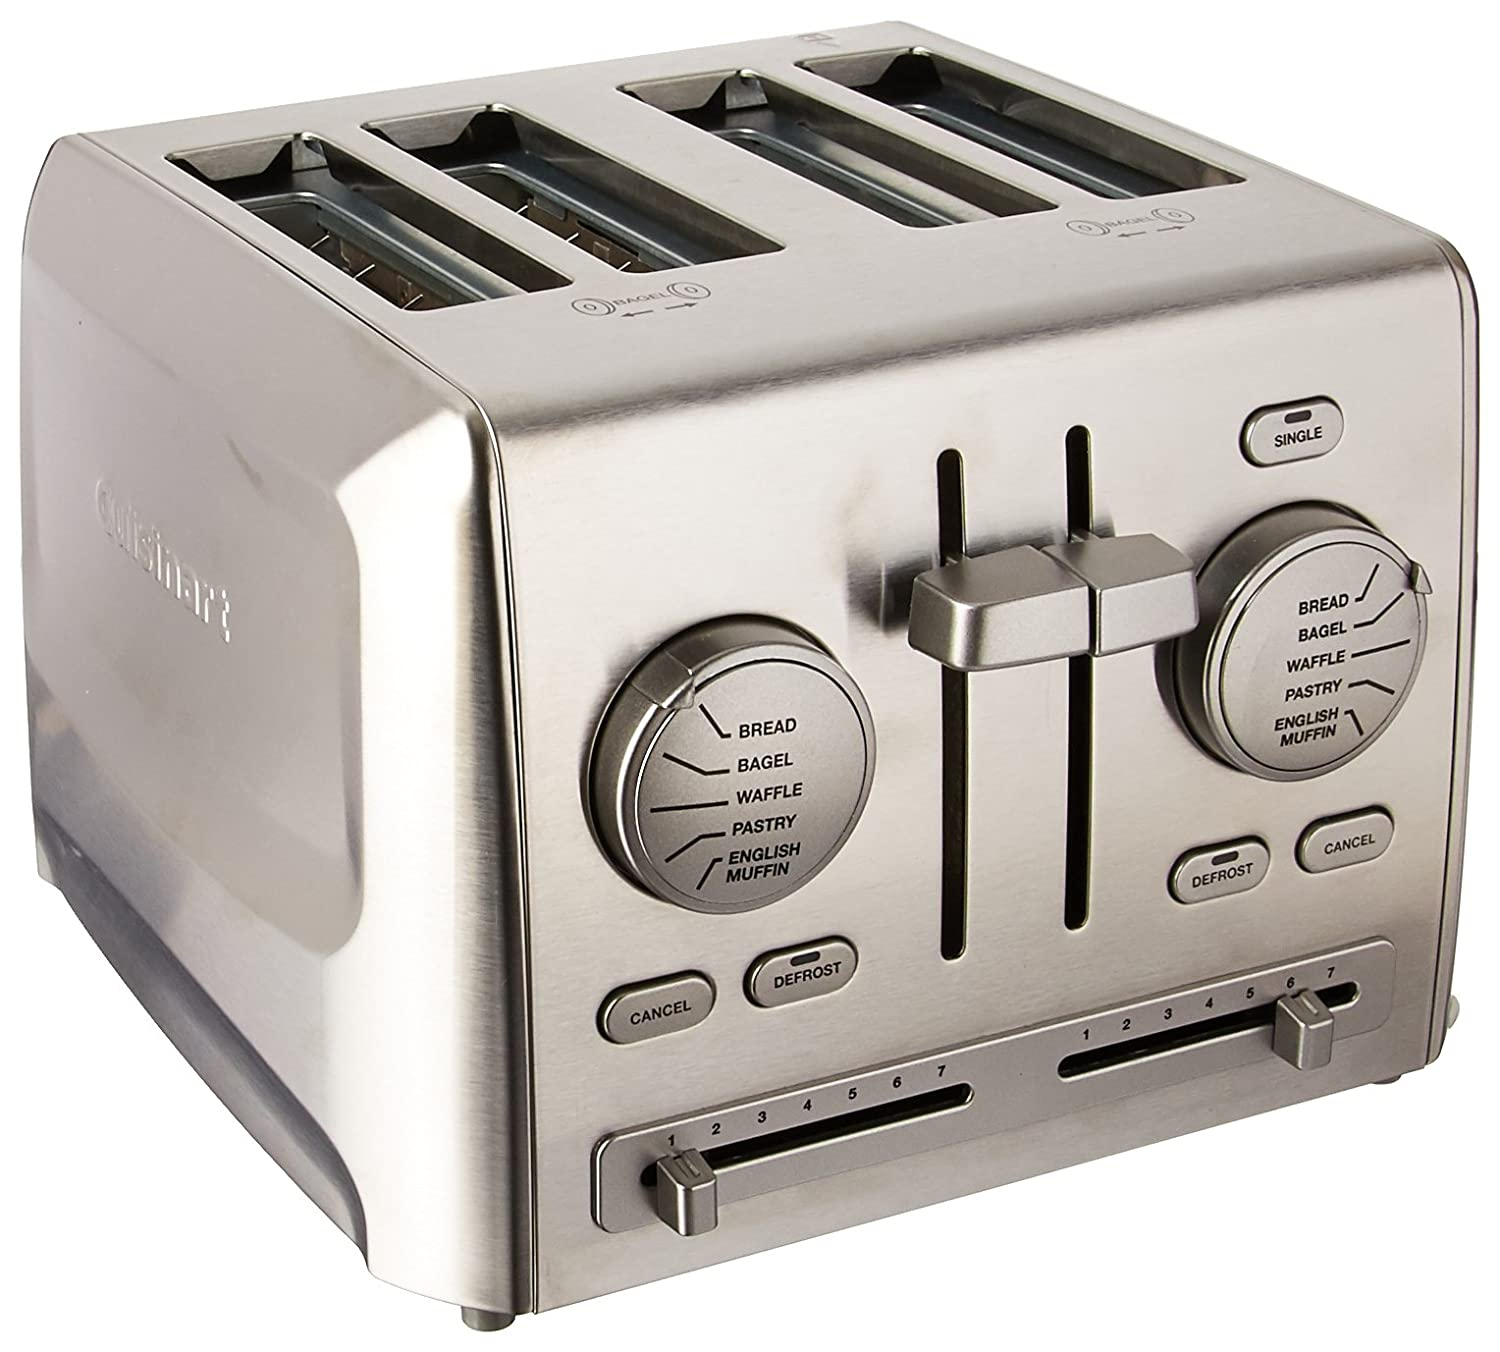 Cuisinart 086279087959 CPT-640 4-Slice Metal Toaster, Stainless Steel